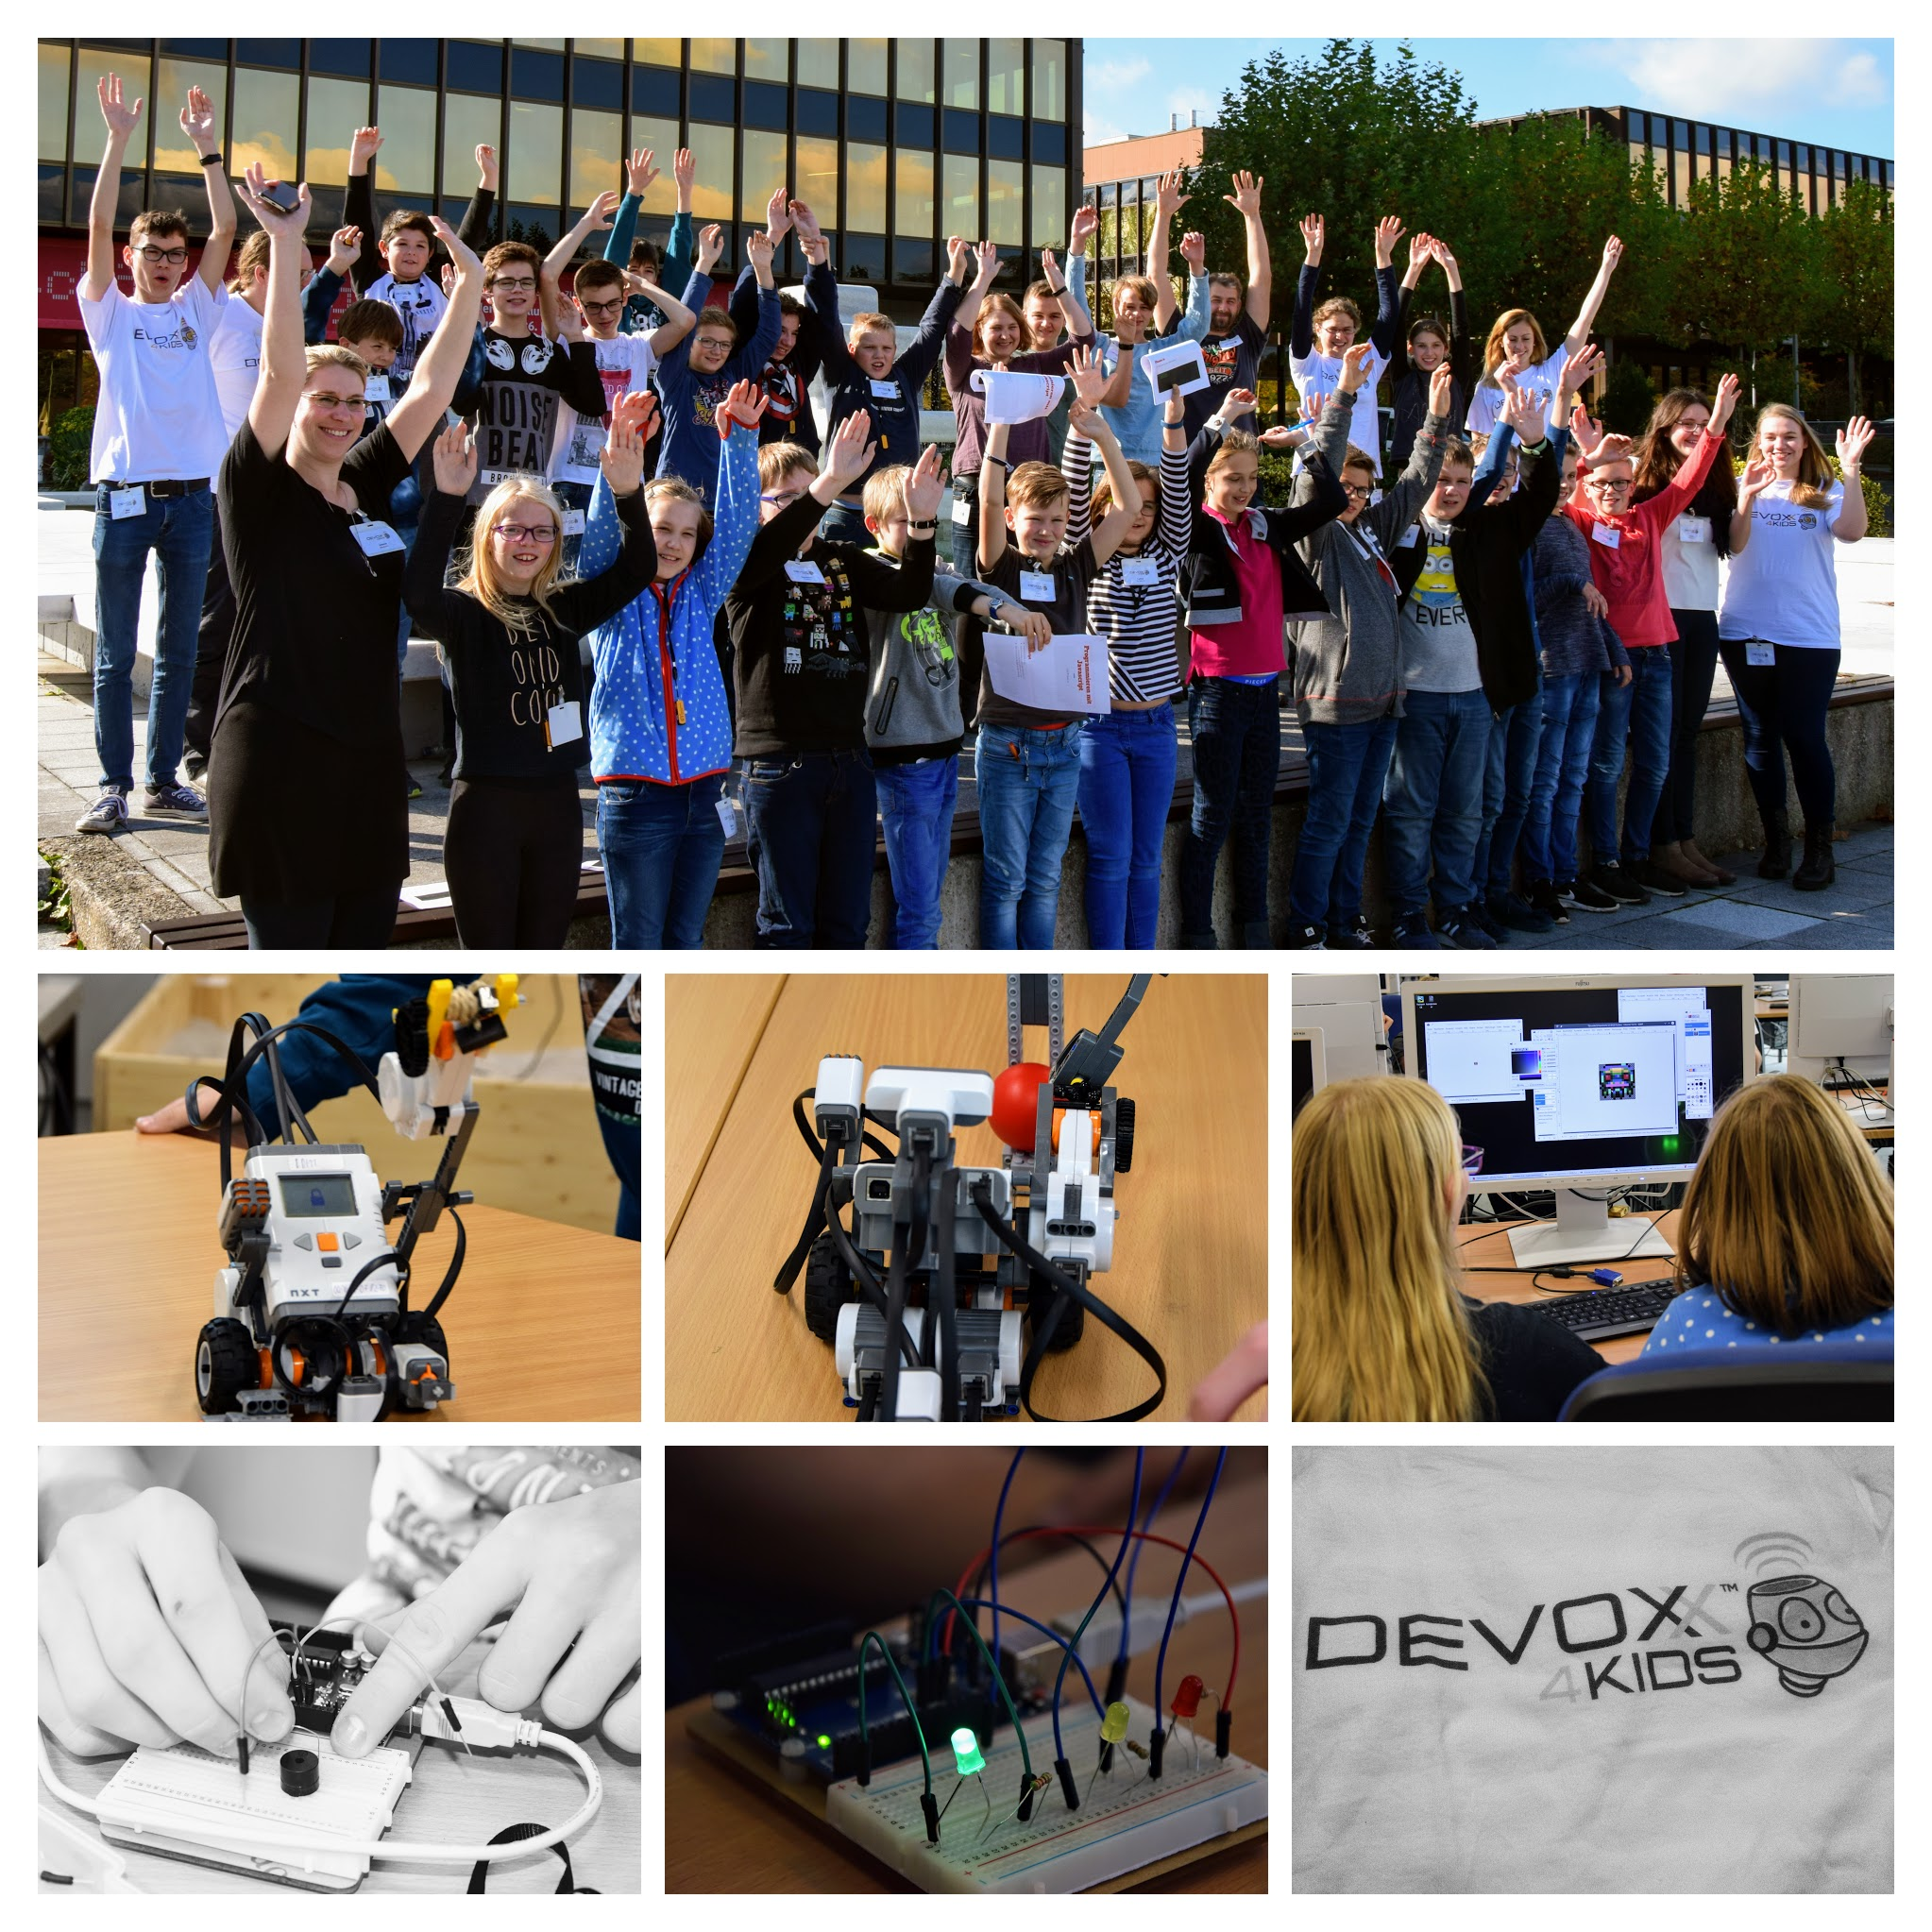 devoxx4kids 17 01 collage.jpg